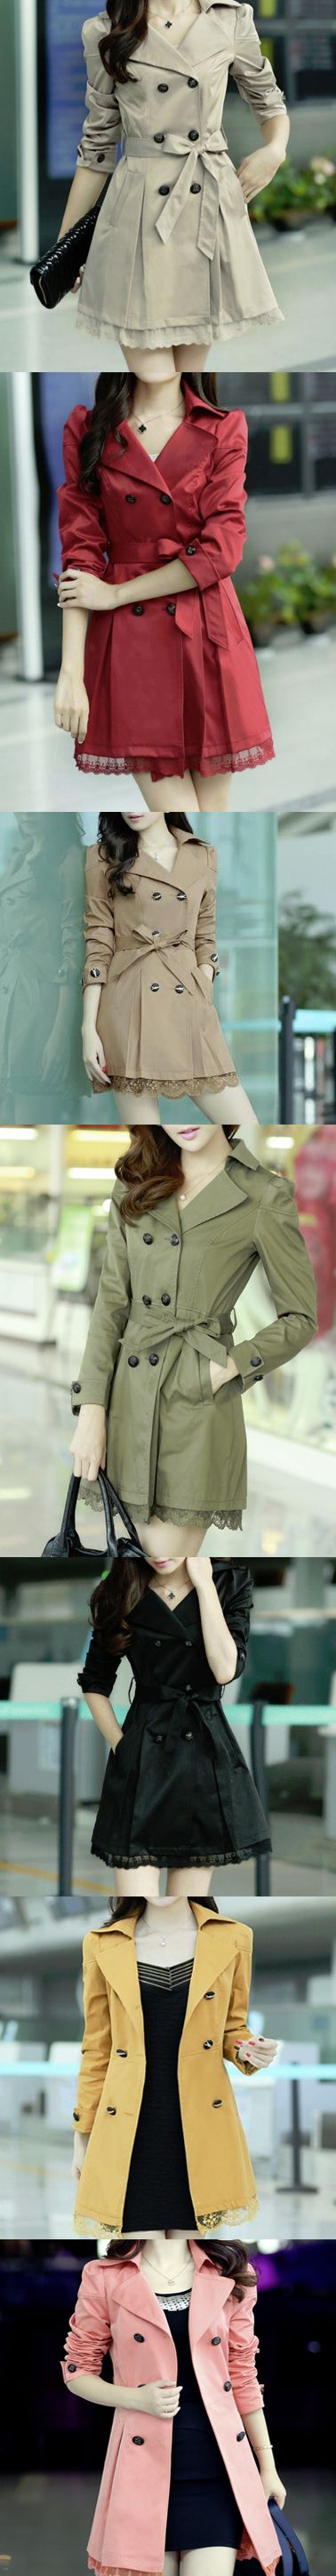 Trench Coat for Fall. Women's fall fashion style